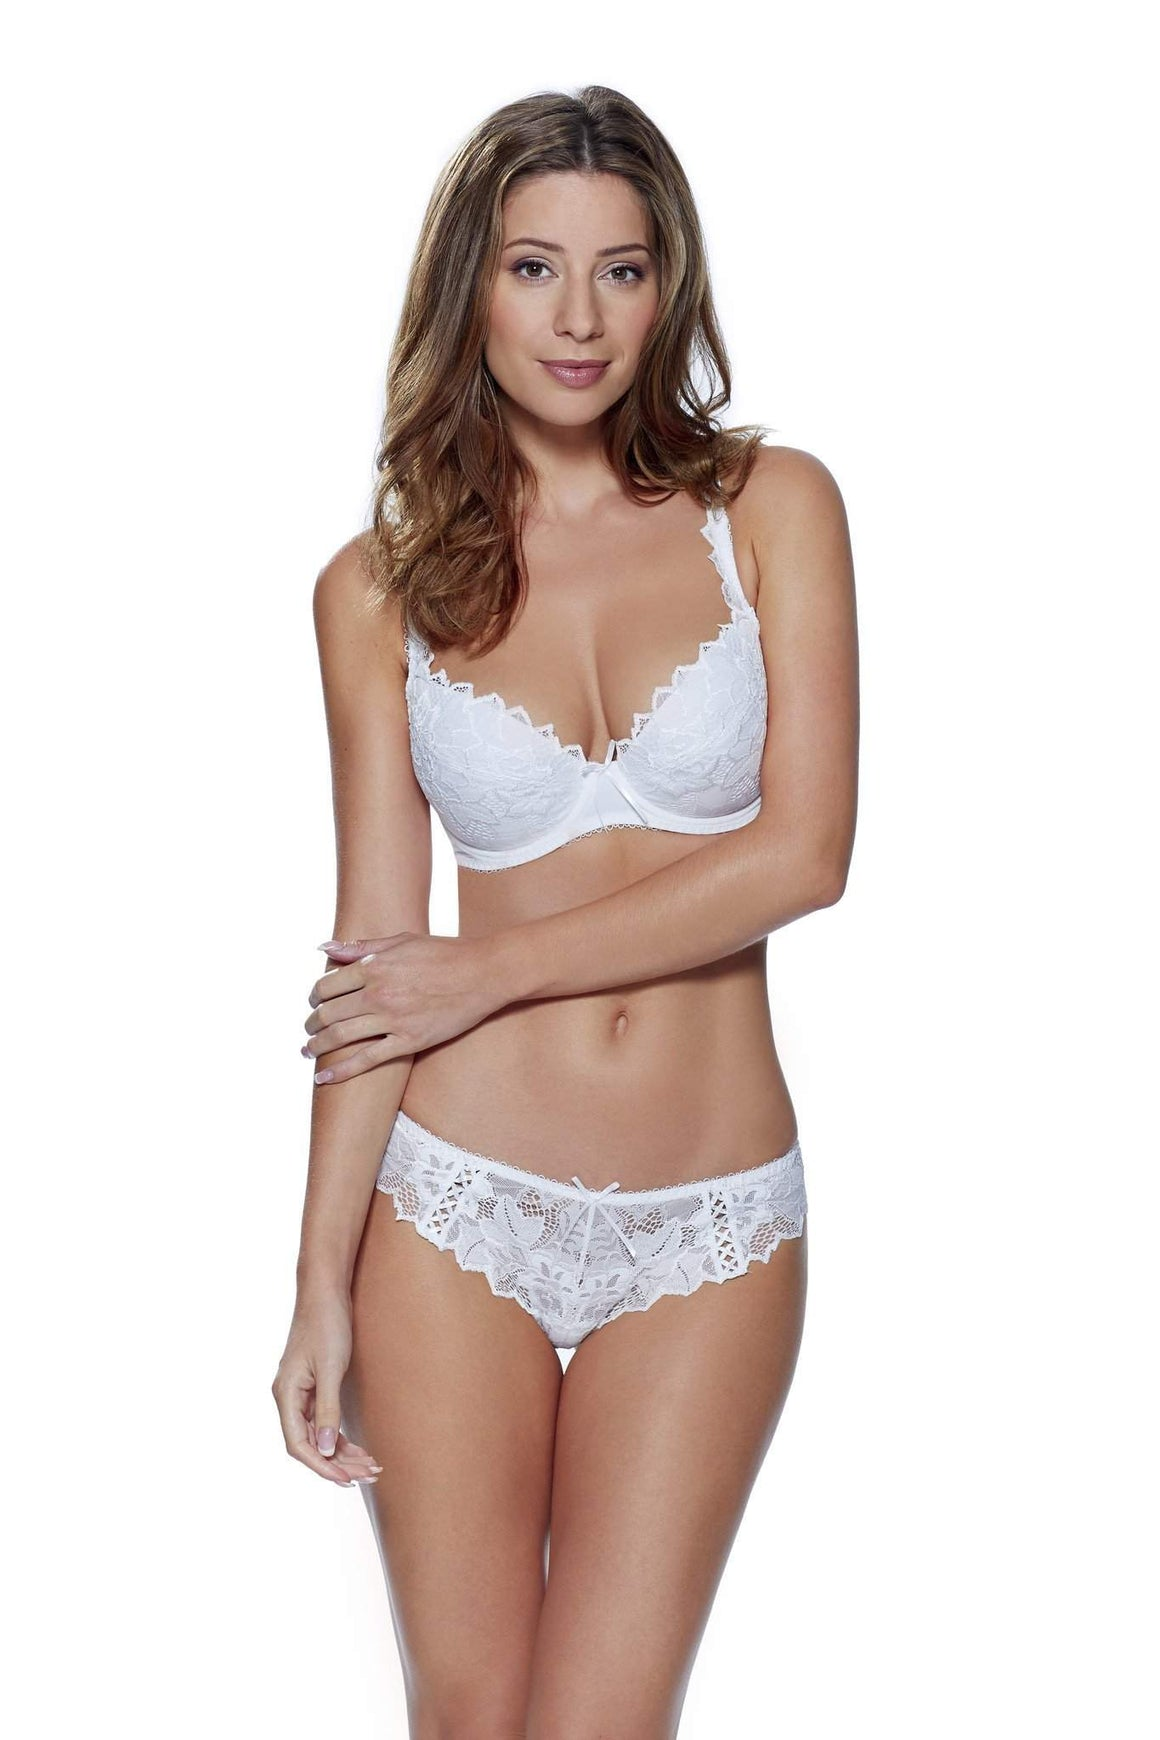 Fiore Thong in White by Lepel - Charnos / Lepel - Katys Boutique Lingerie USA